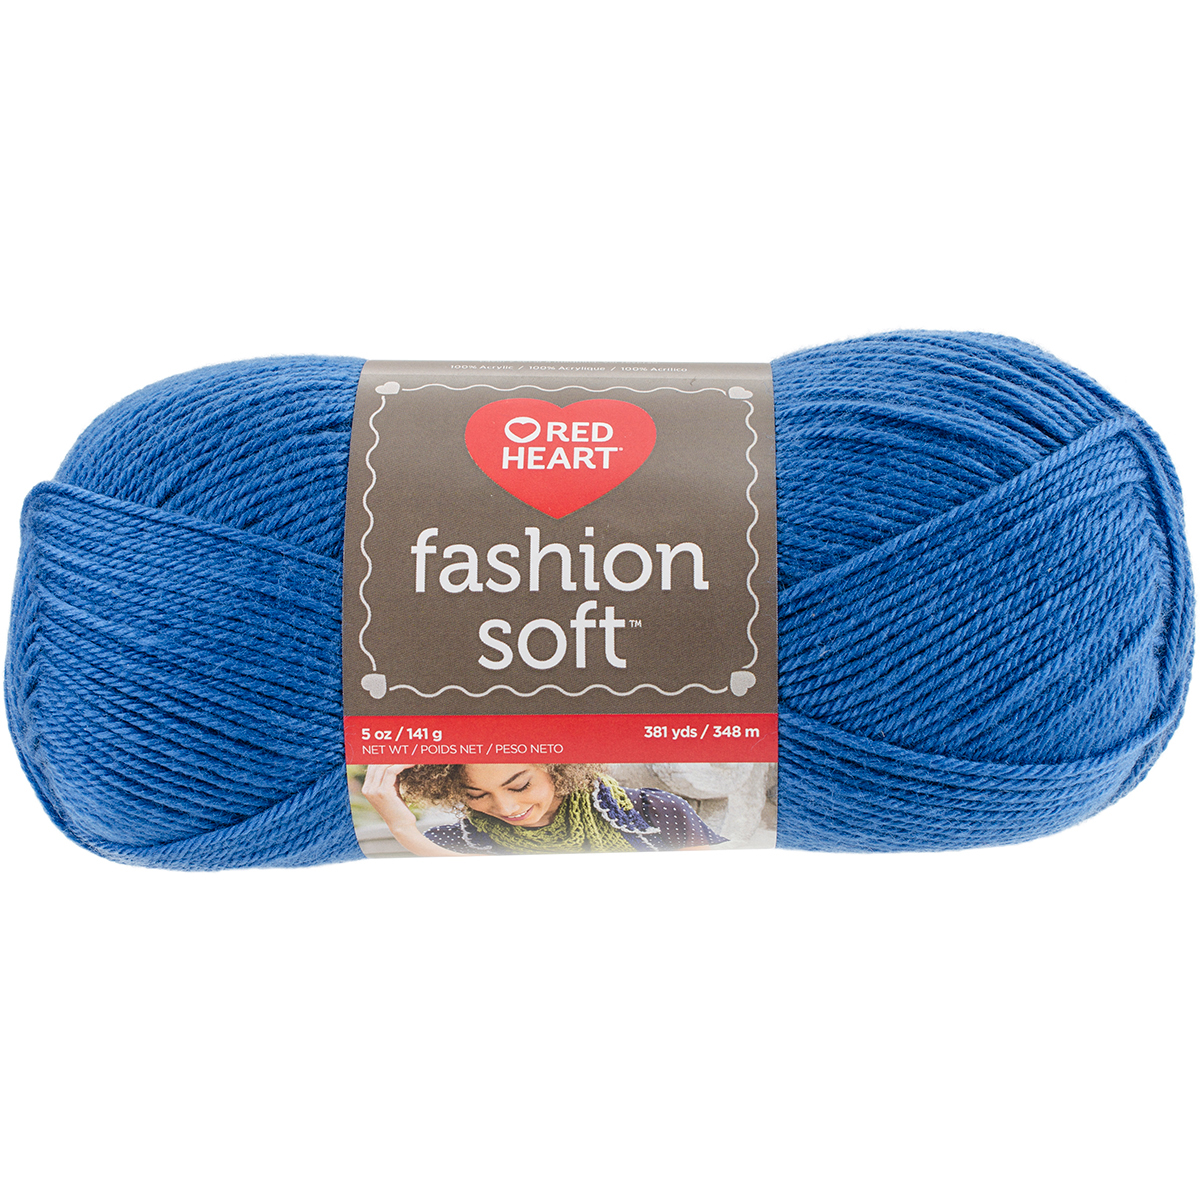 Red Heart Fashion Soft Yarn, Cobalt